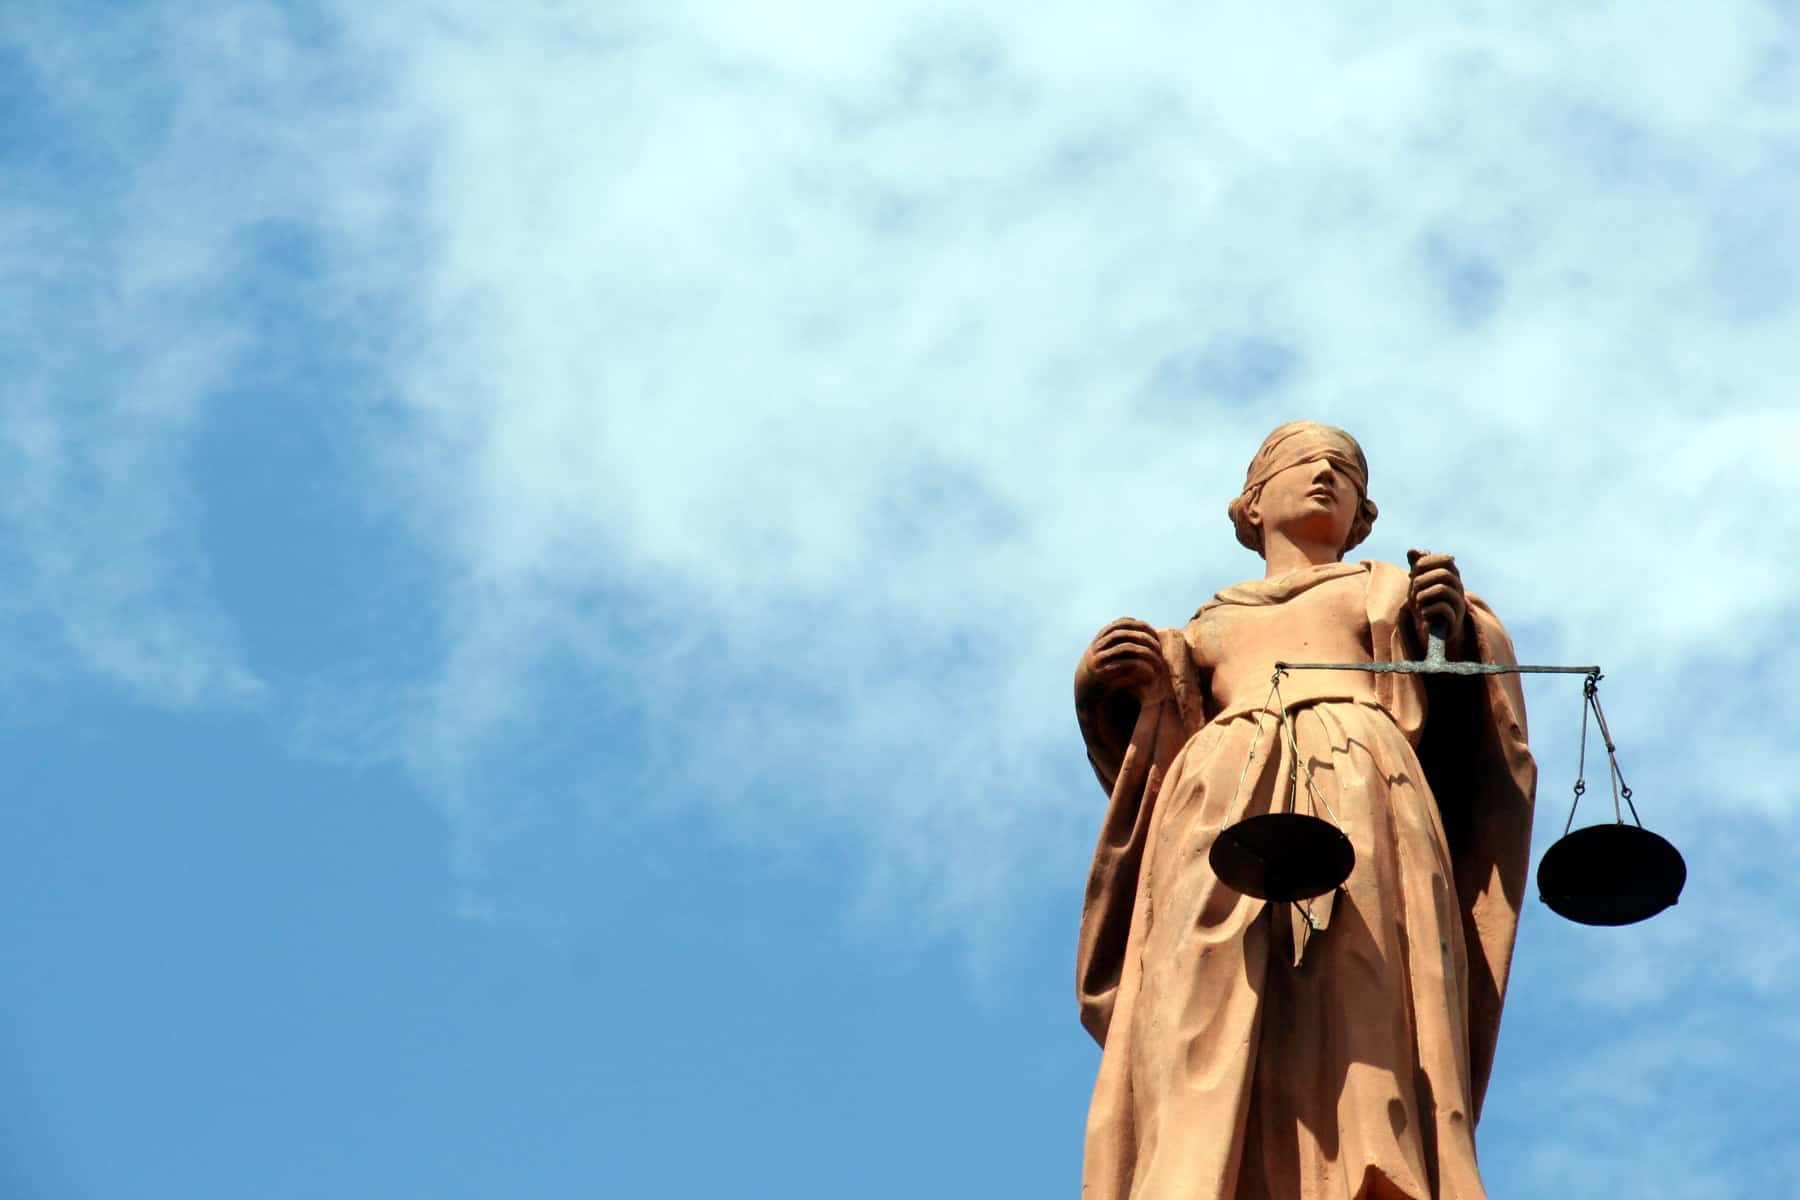 statue of lady justice, blindfolded, against a blue sky